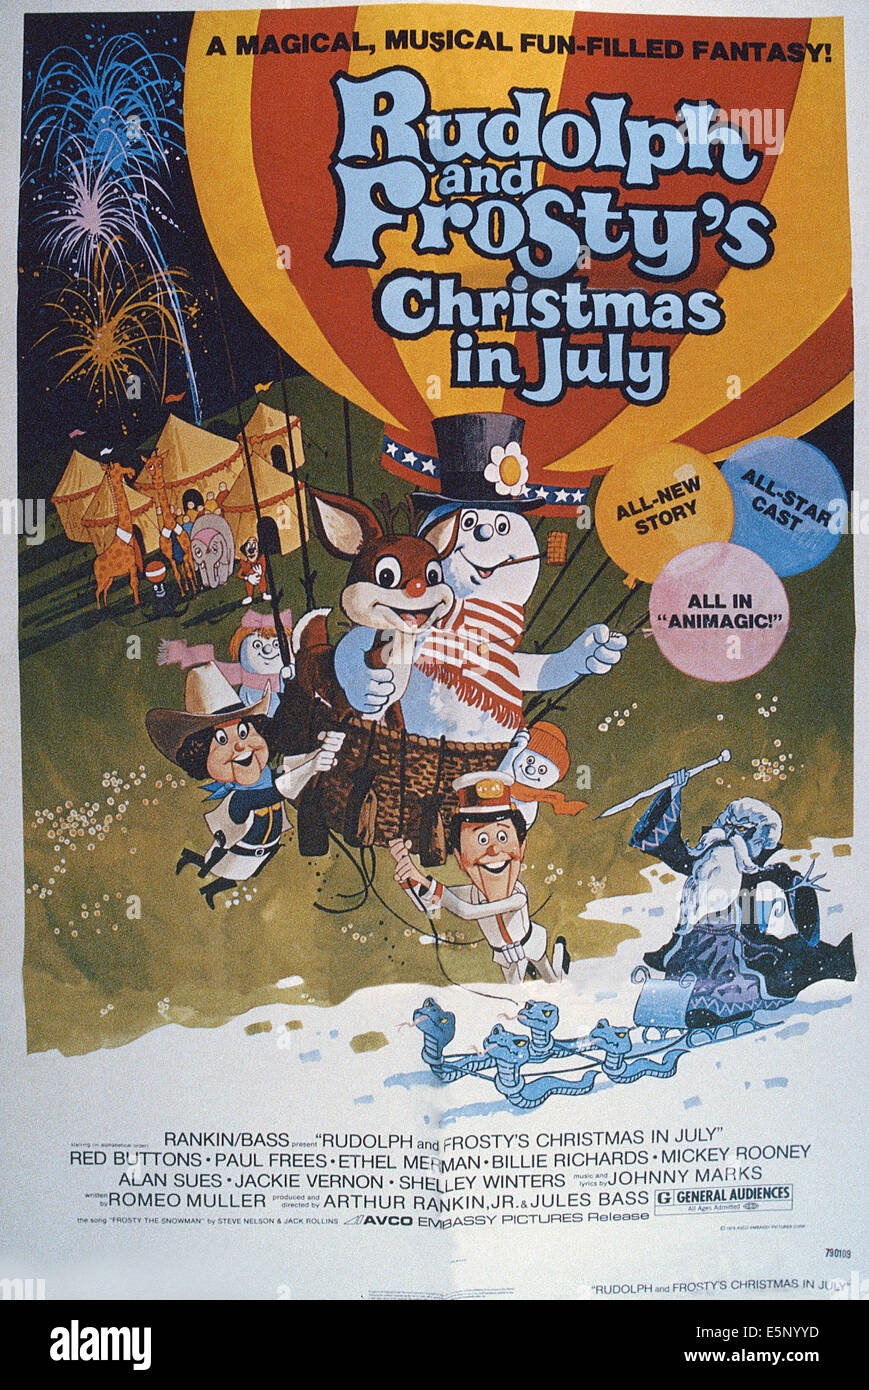 RUDOLPH AND FROSTYS CHRISTMAS IN JULY US Poster In